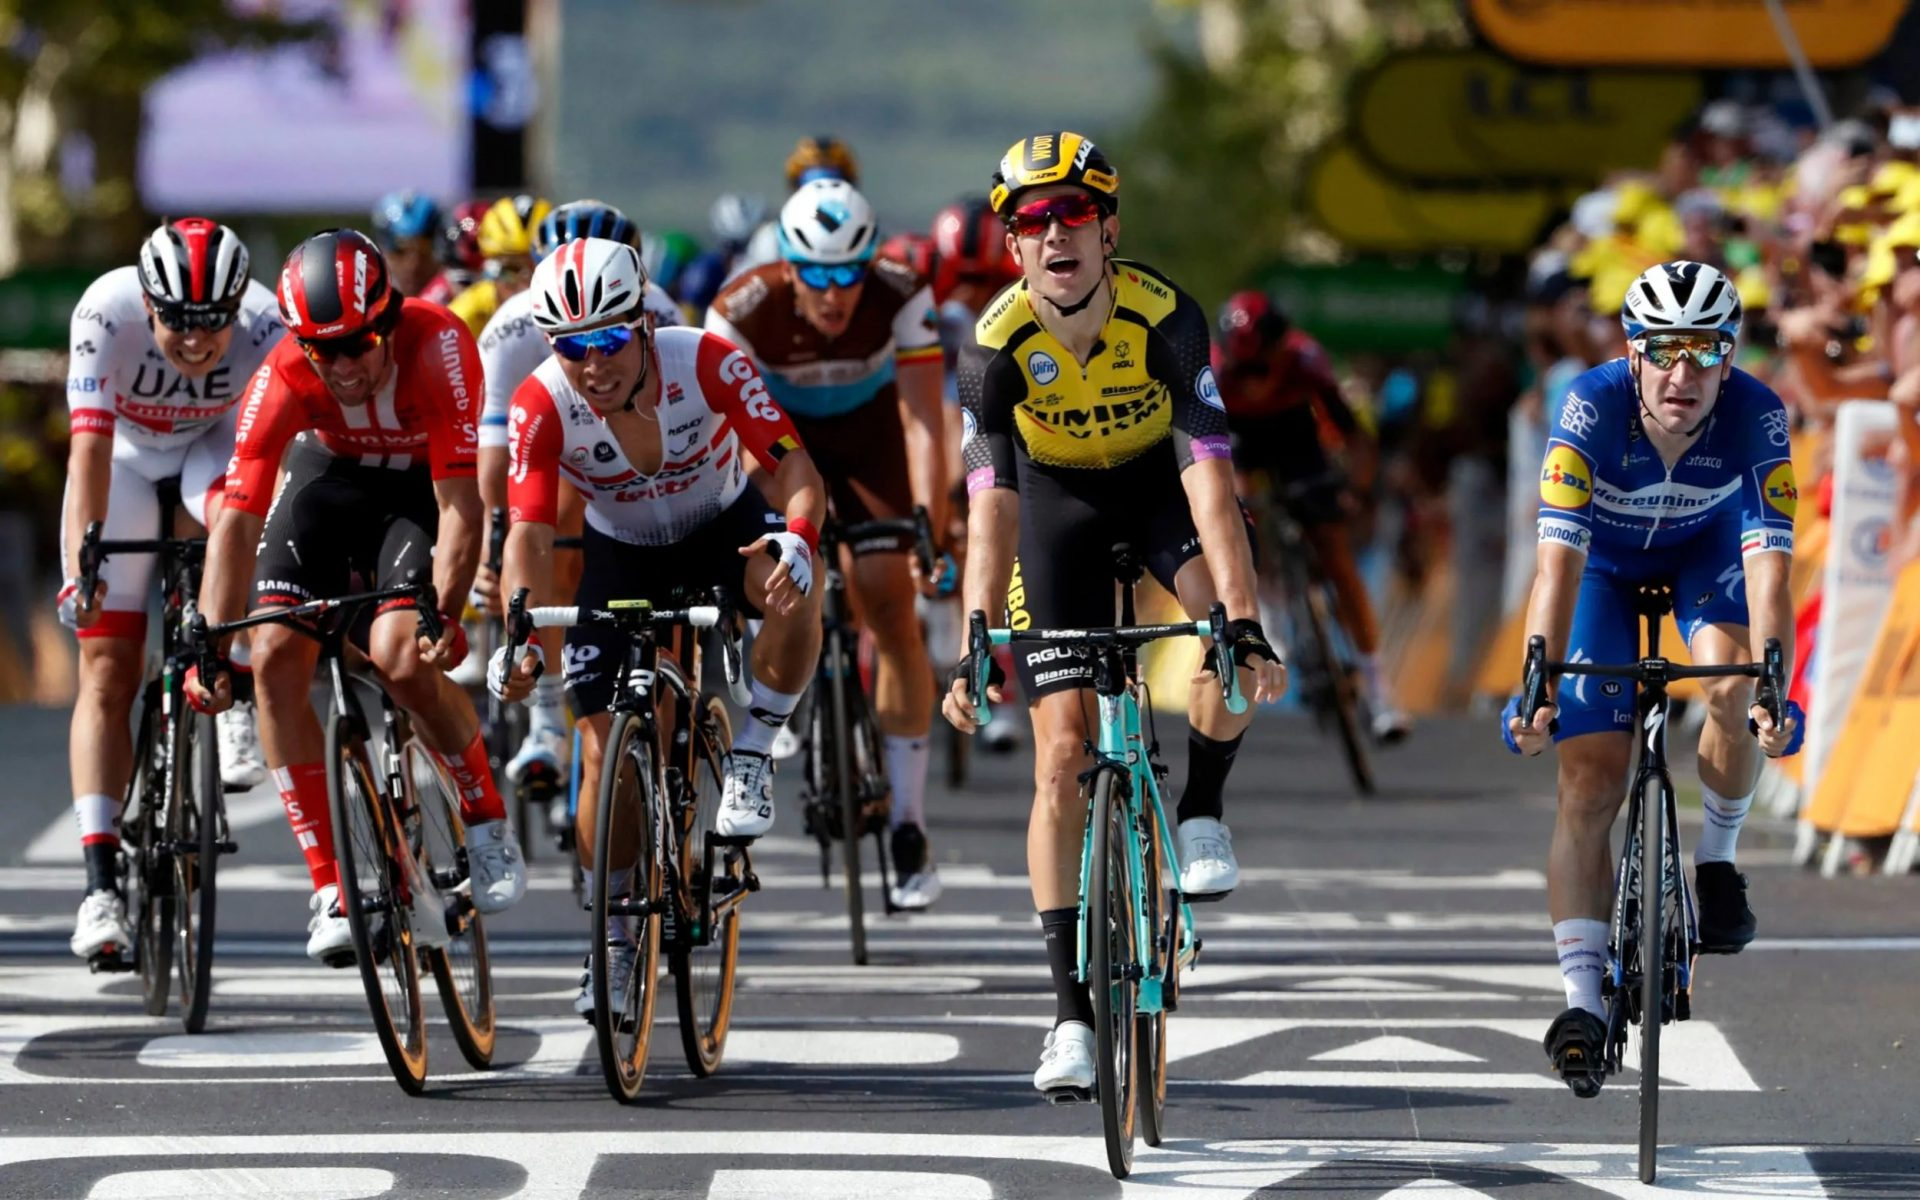 Van Aert Wins 2019 Tour de France Stage 10 and Some Big GC Contenders Lose Time 16